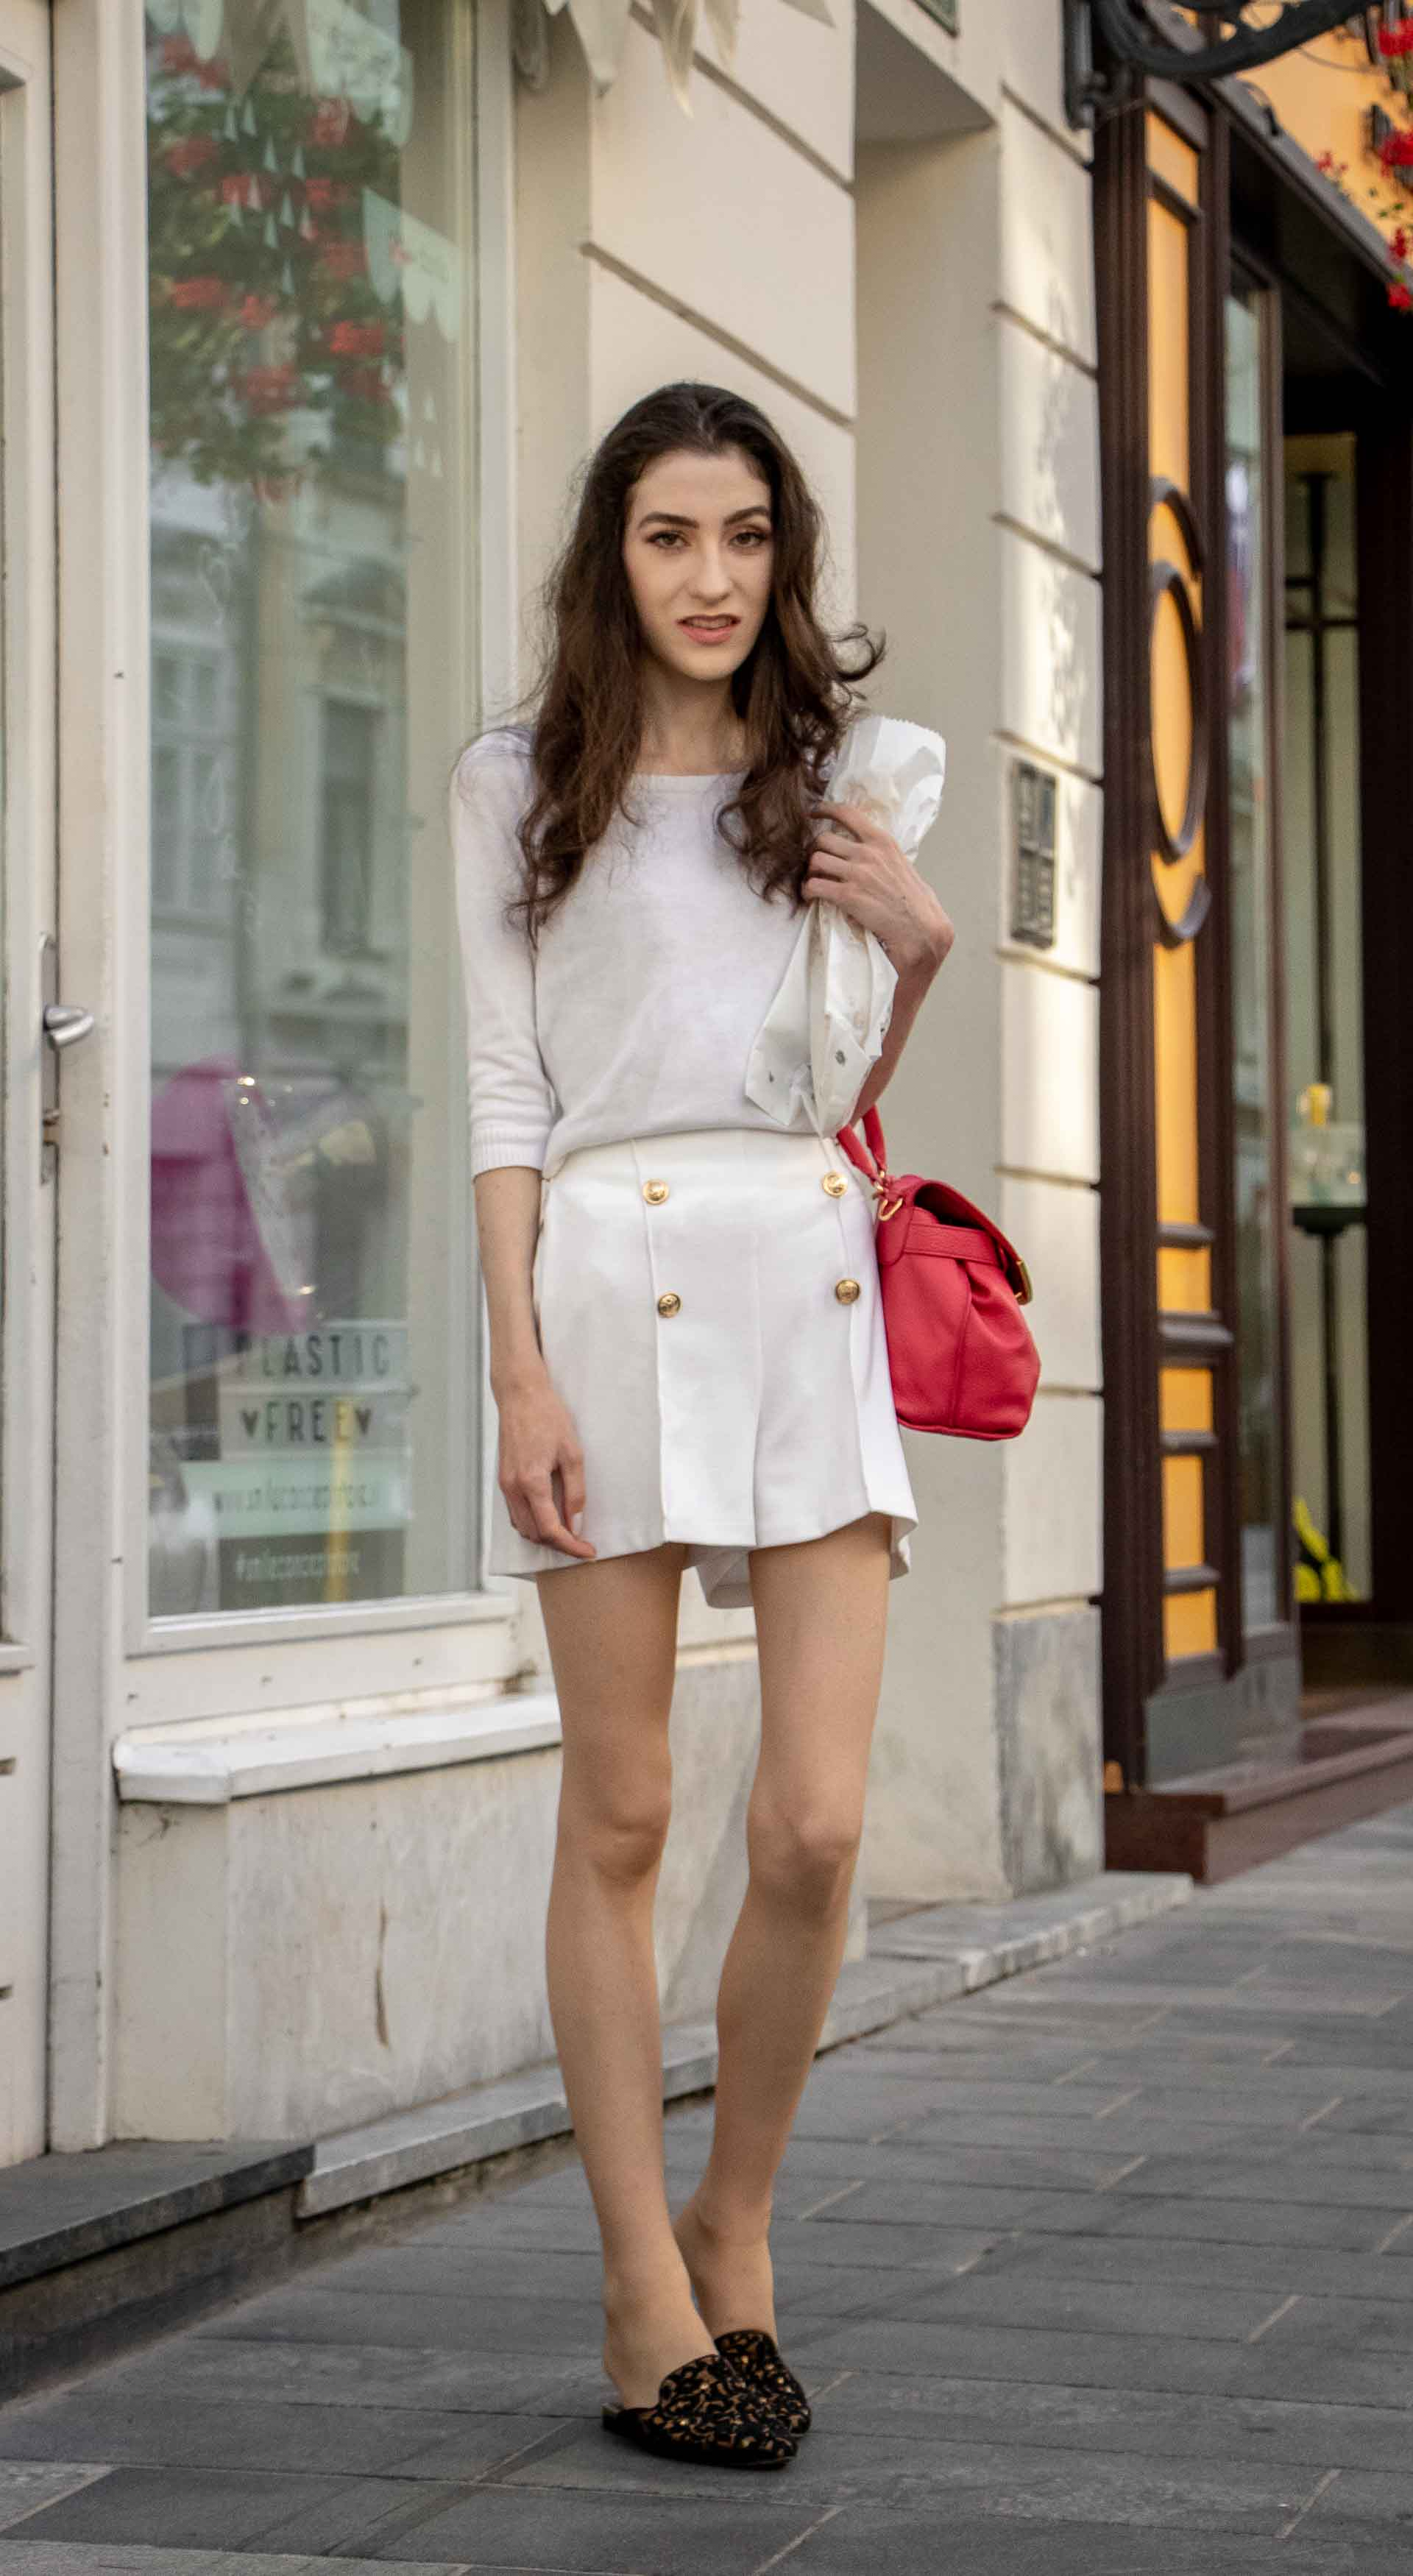 Beautiful Slovenian Fashion Blogger Veronika Lipar of Brunette from Wall wearing all in white outfit, a white sweater, white tailored shorts, black flat slipper mules, pink top handle bag, a paper bag on the street in Ljubljana during heatwave